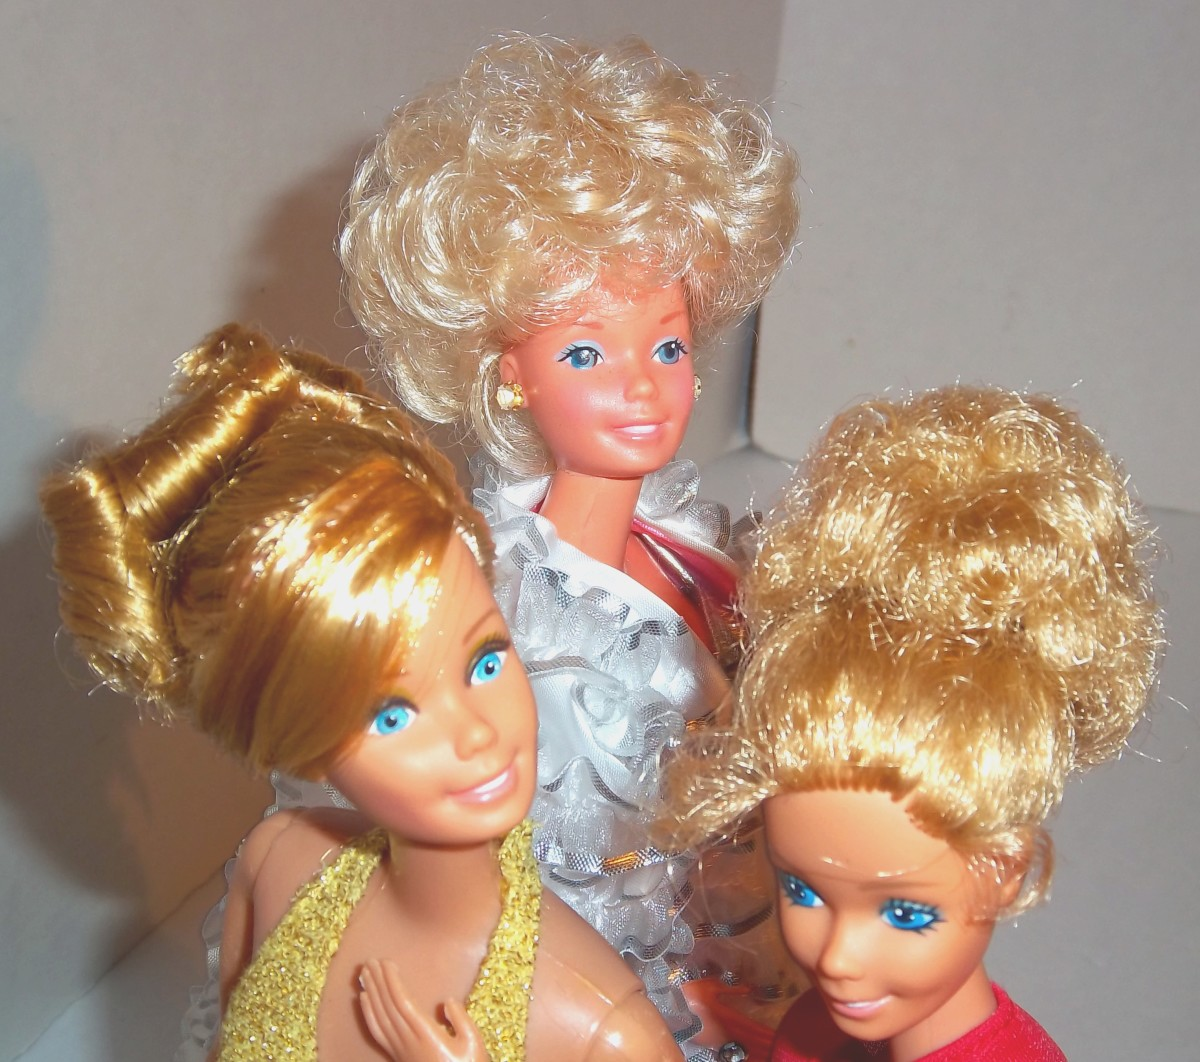 Hairstyles for you style presso on barbie hairstyles you can do on